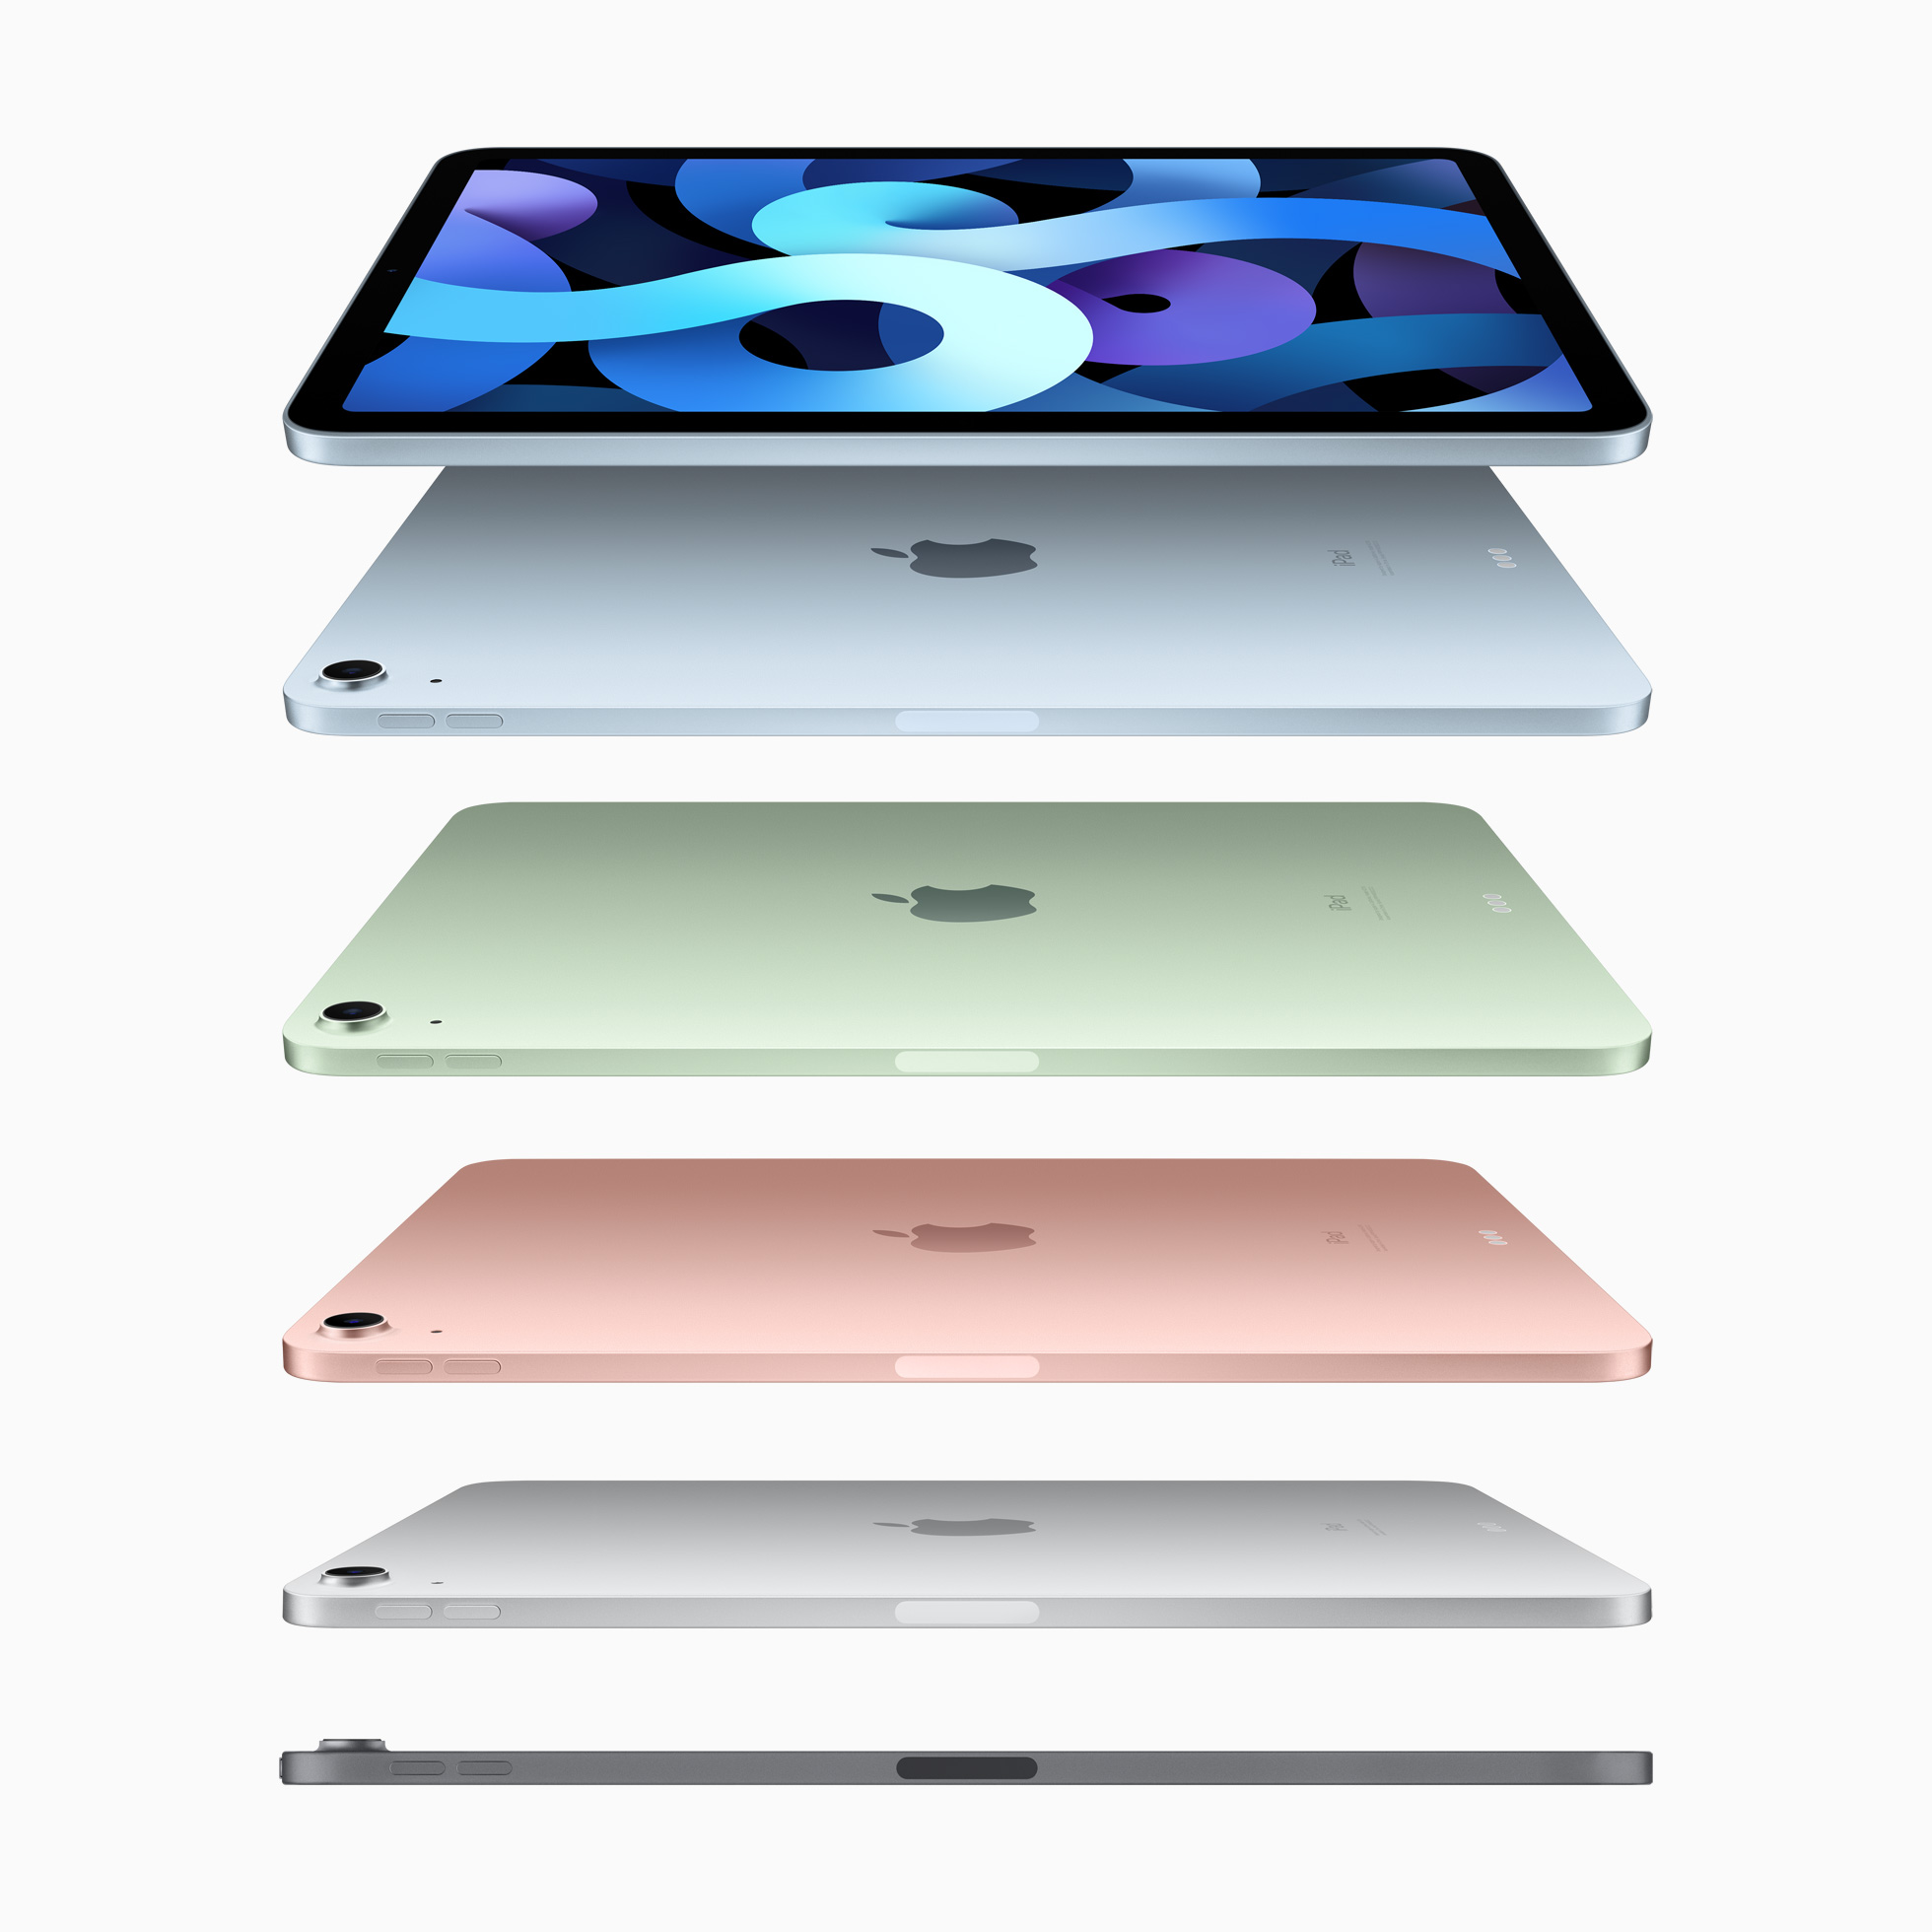 Apple iPad Air 2020 design and colours